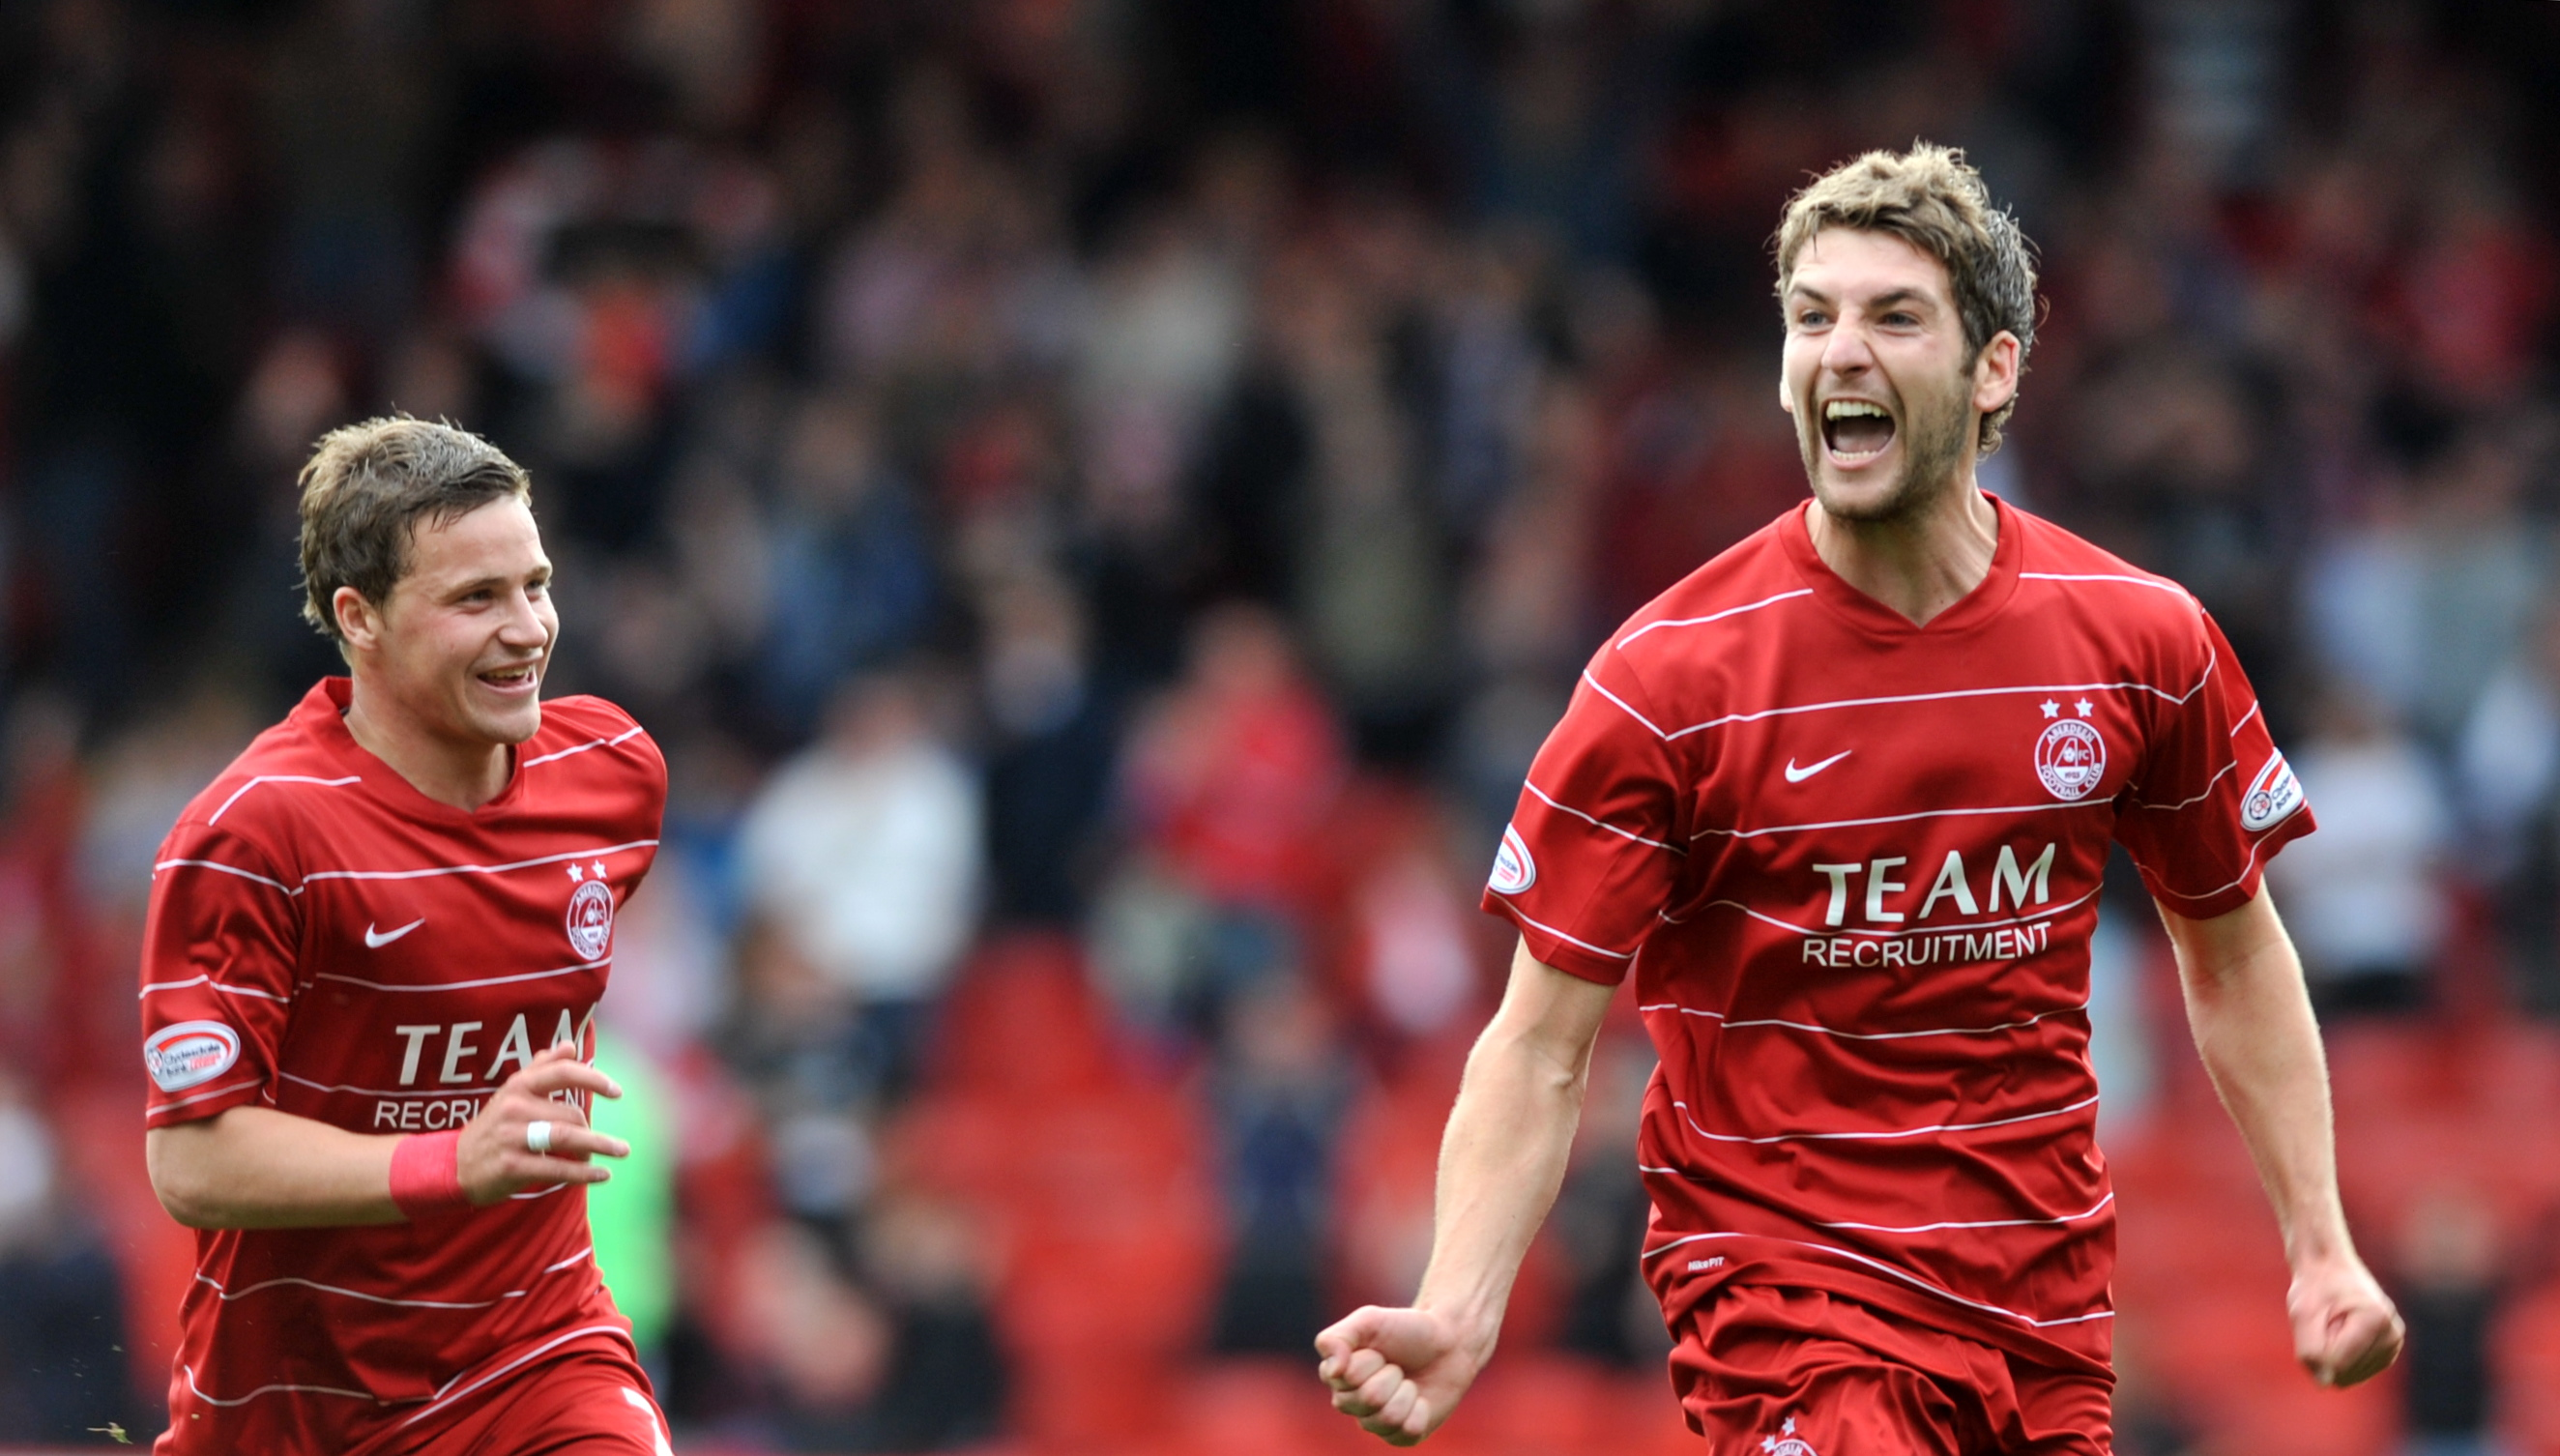 Charlie Mulgrew during his time at Aberdeen.